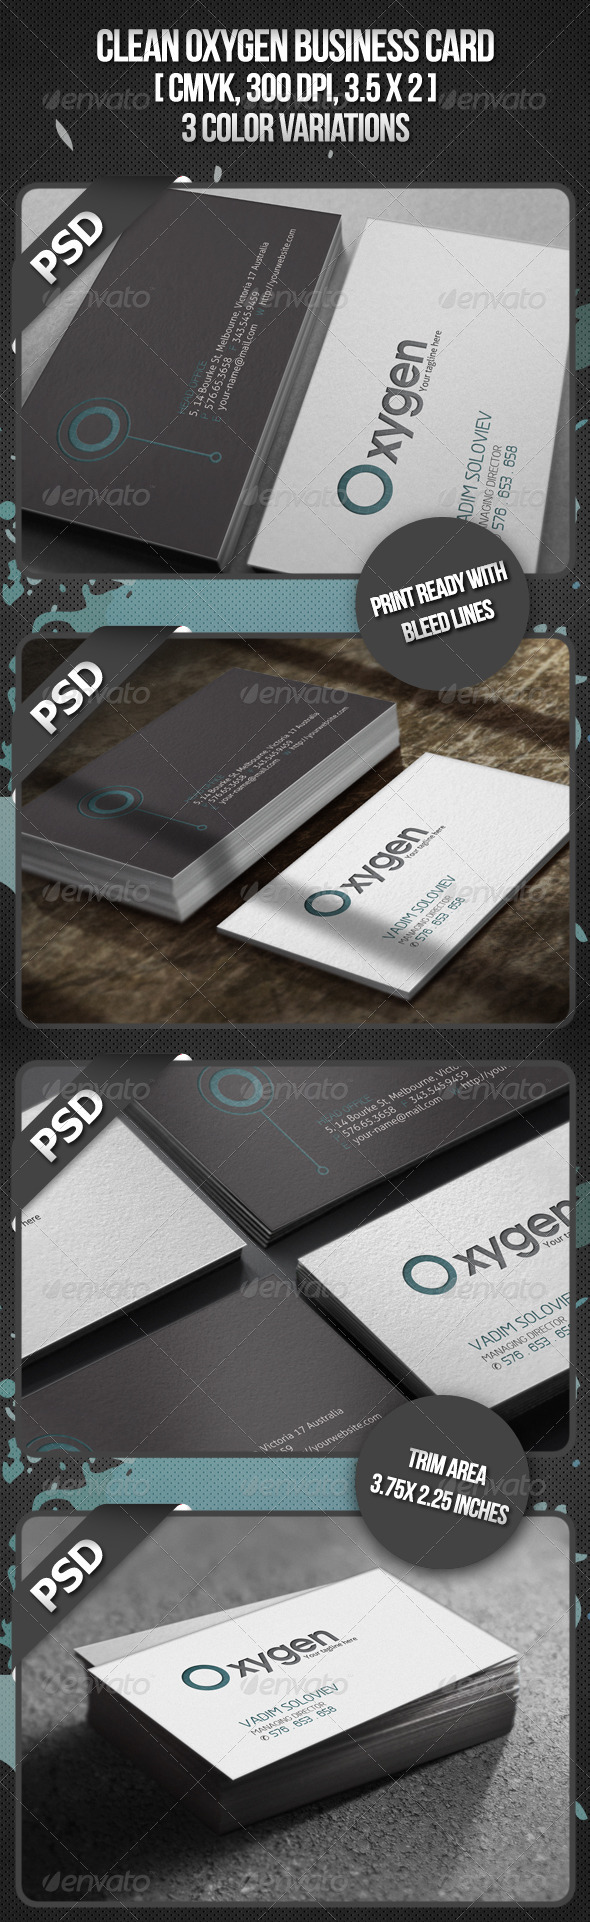 Graphic River Clean Oxygen Business Card Print Templates -  Business Cards  Corporate 1040598